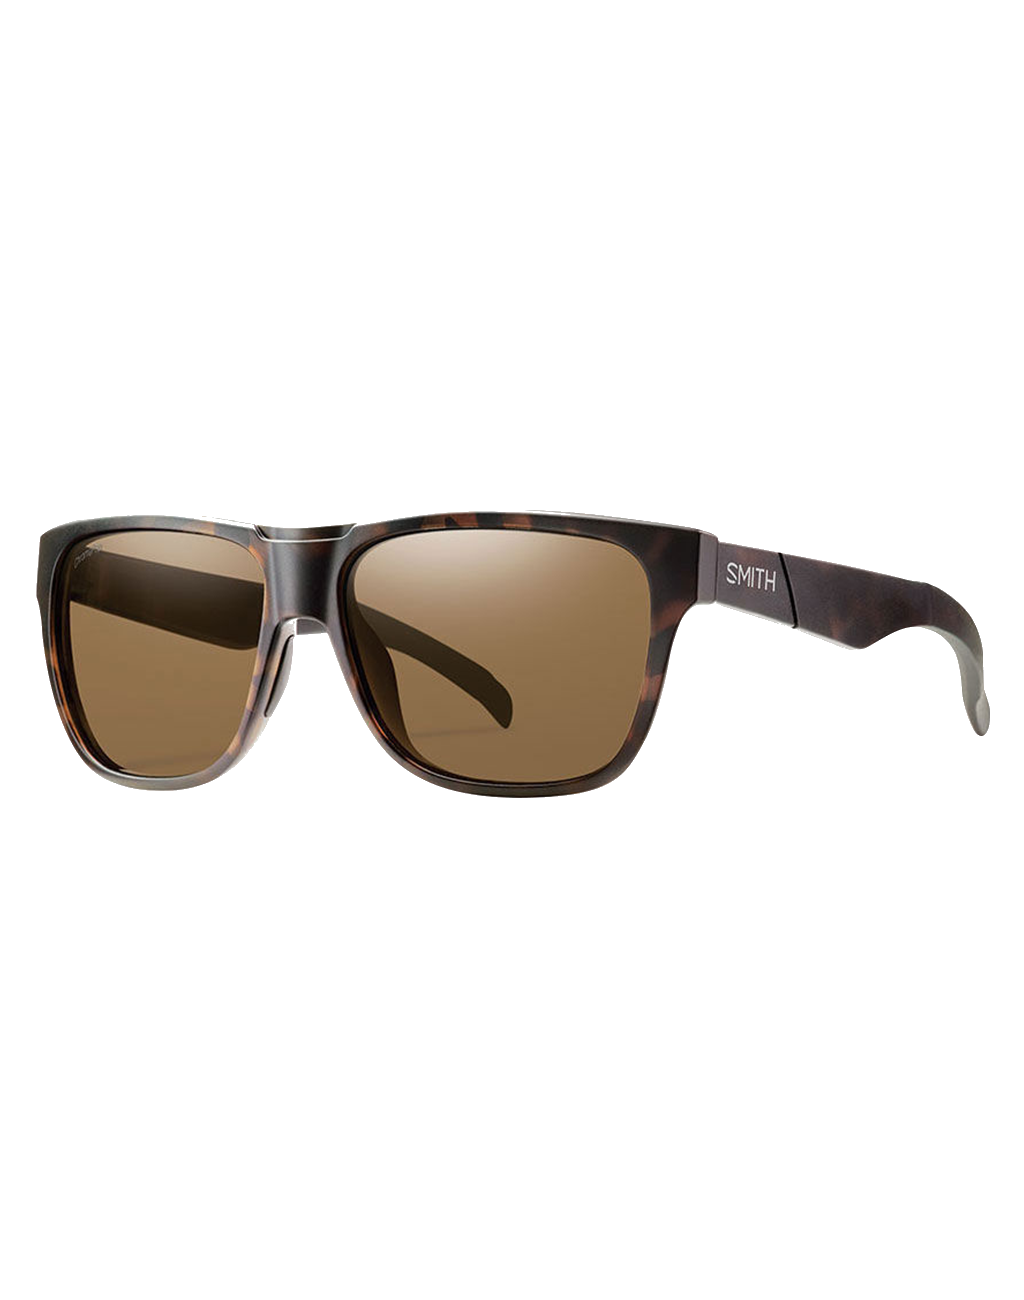 Smith Optics Lowdown Polarized Sunglasses